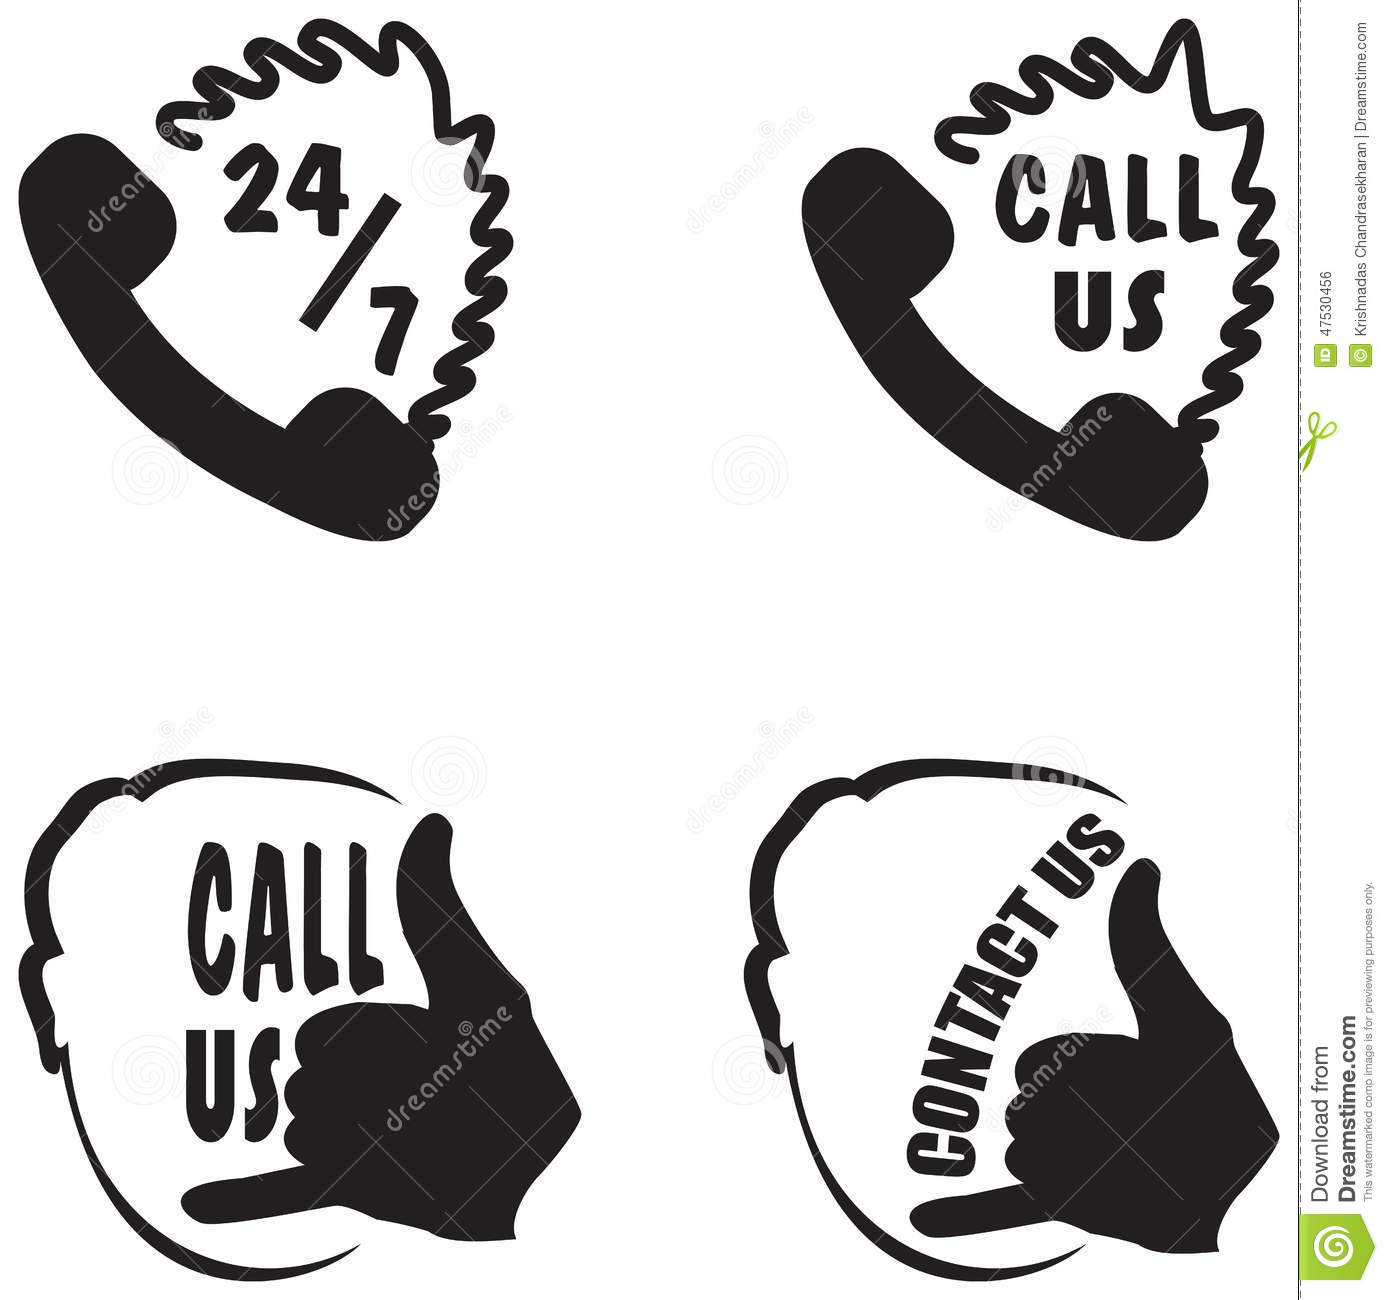 Call Us And Contact Us Hand Gestures Buttons Stock Vector